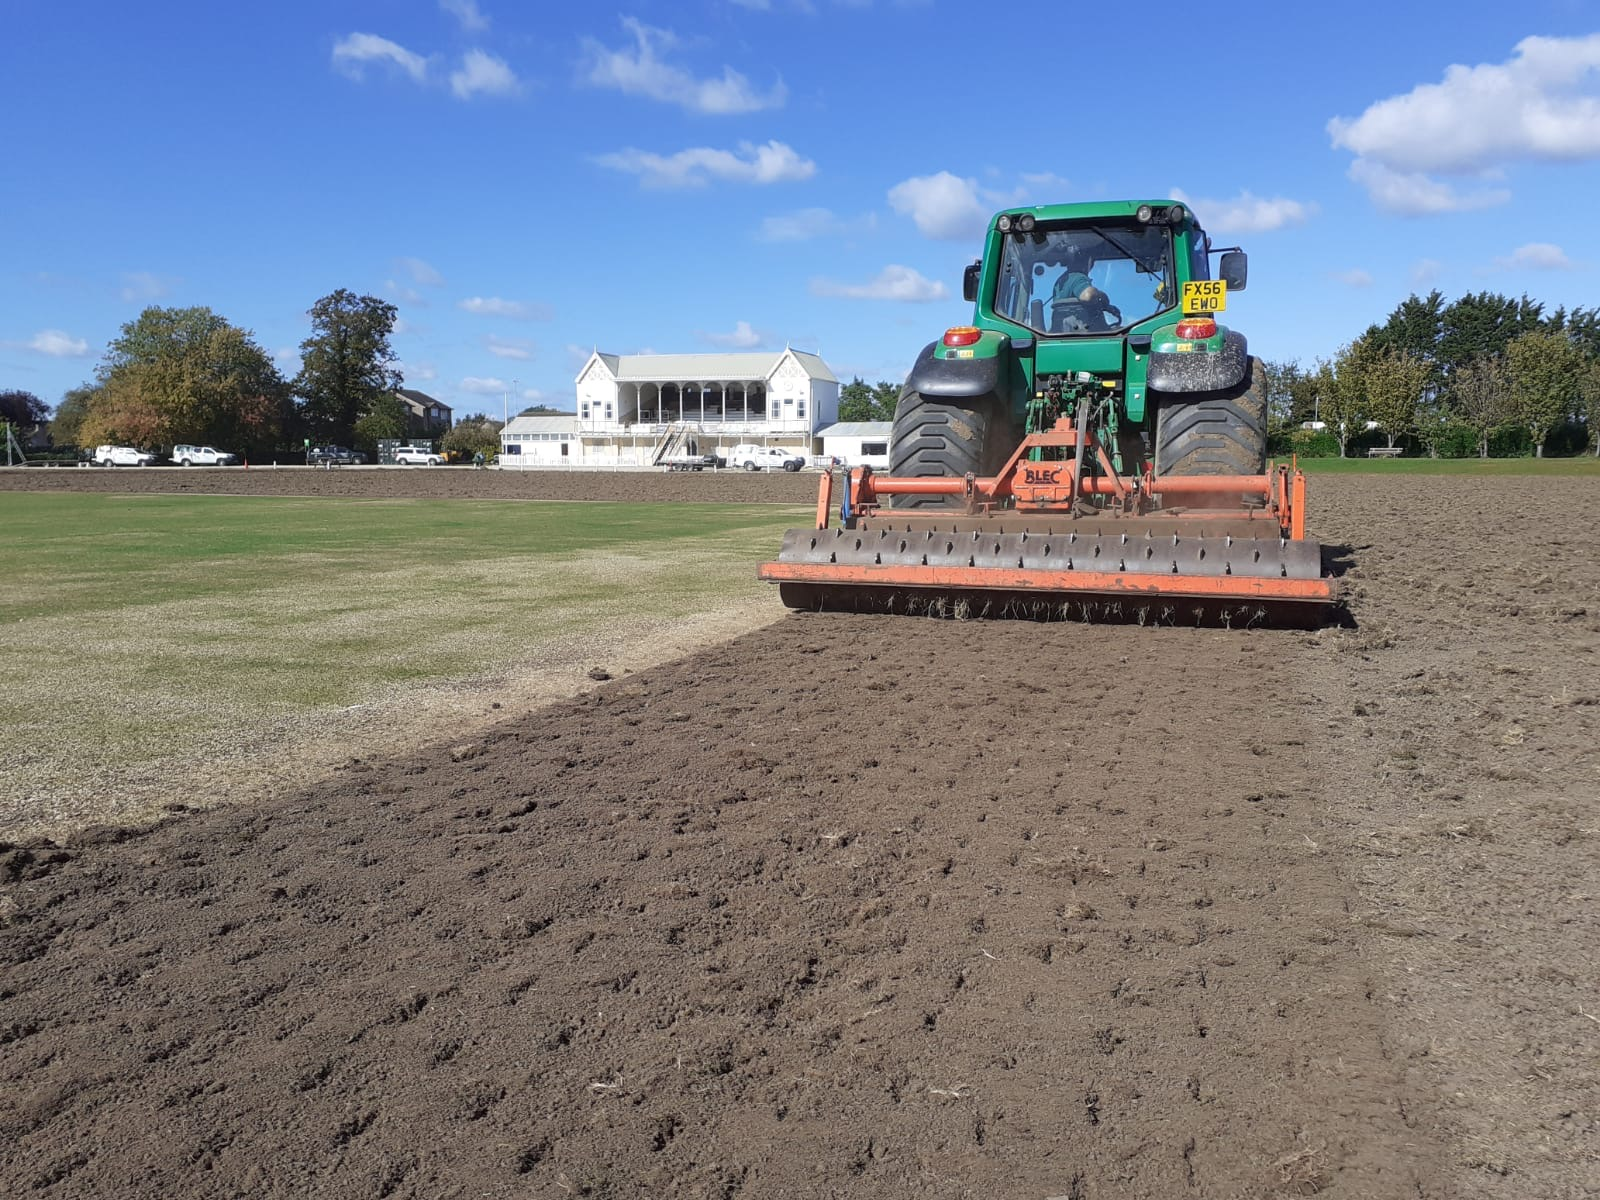 Biggest ever outfield renovation at Swindon Cricket Club